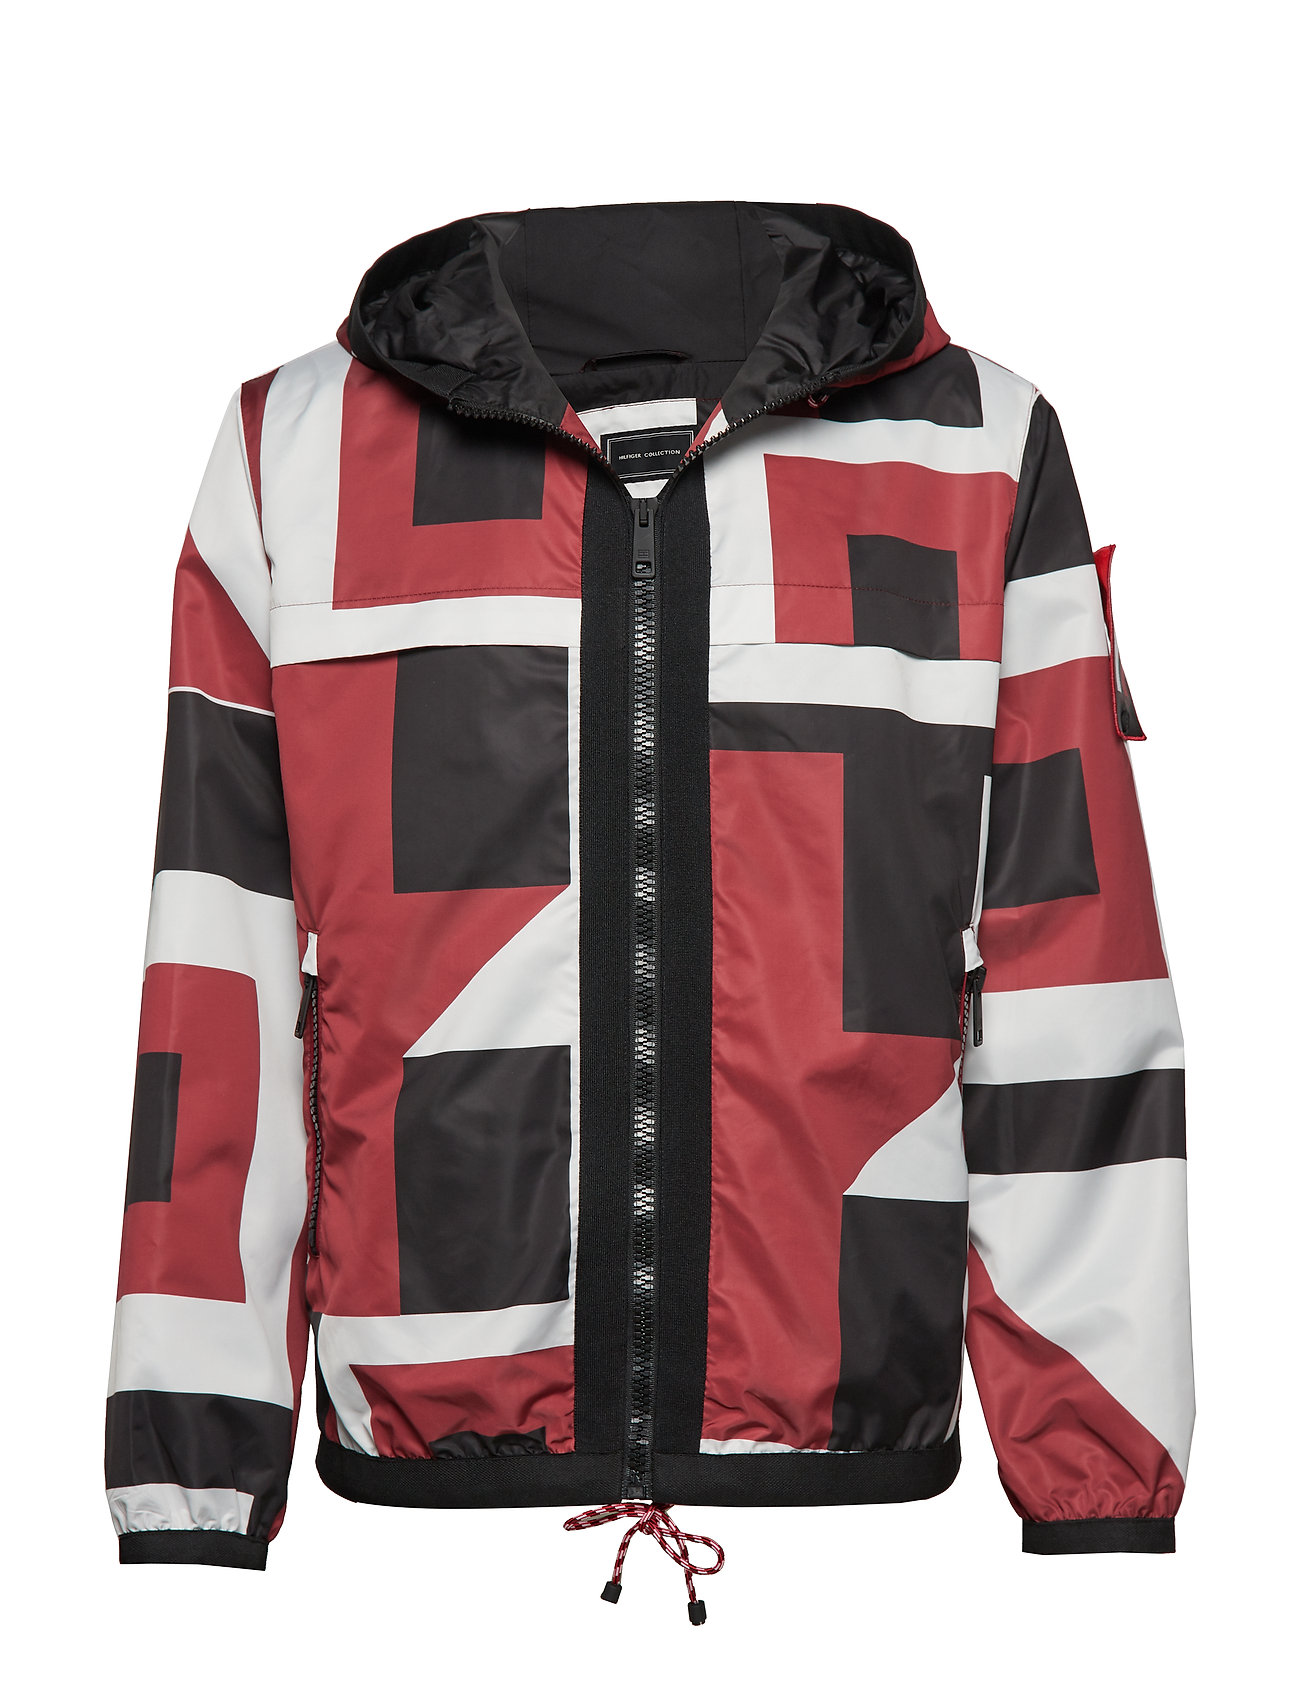 Hilfiger Collection GEO HOODED JACKET, 6 - RIO RED